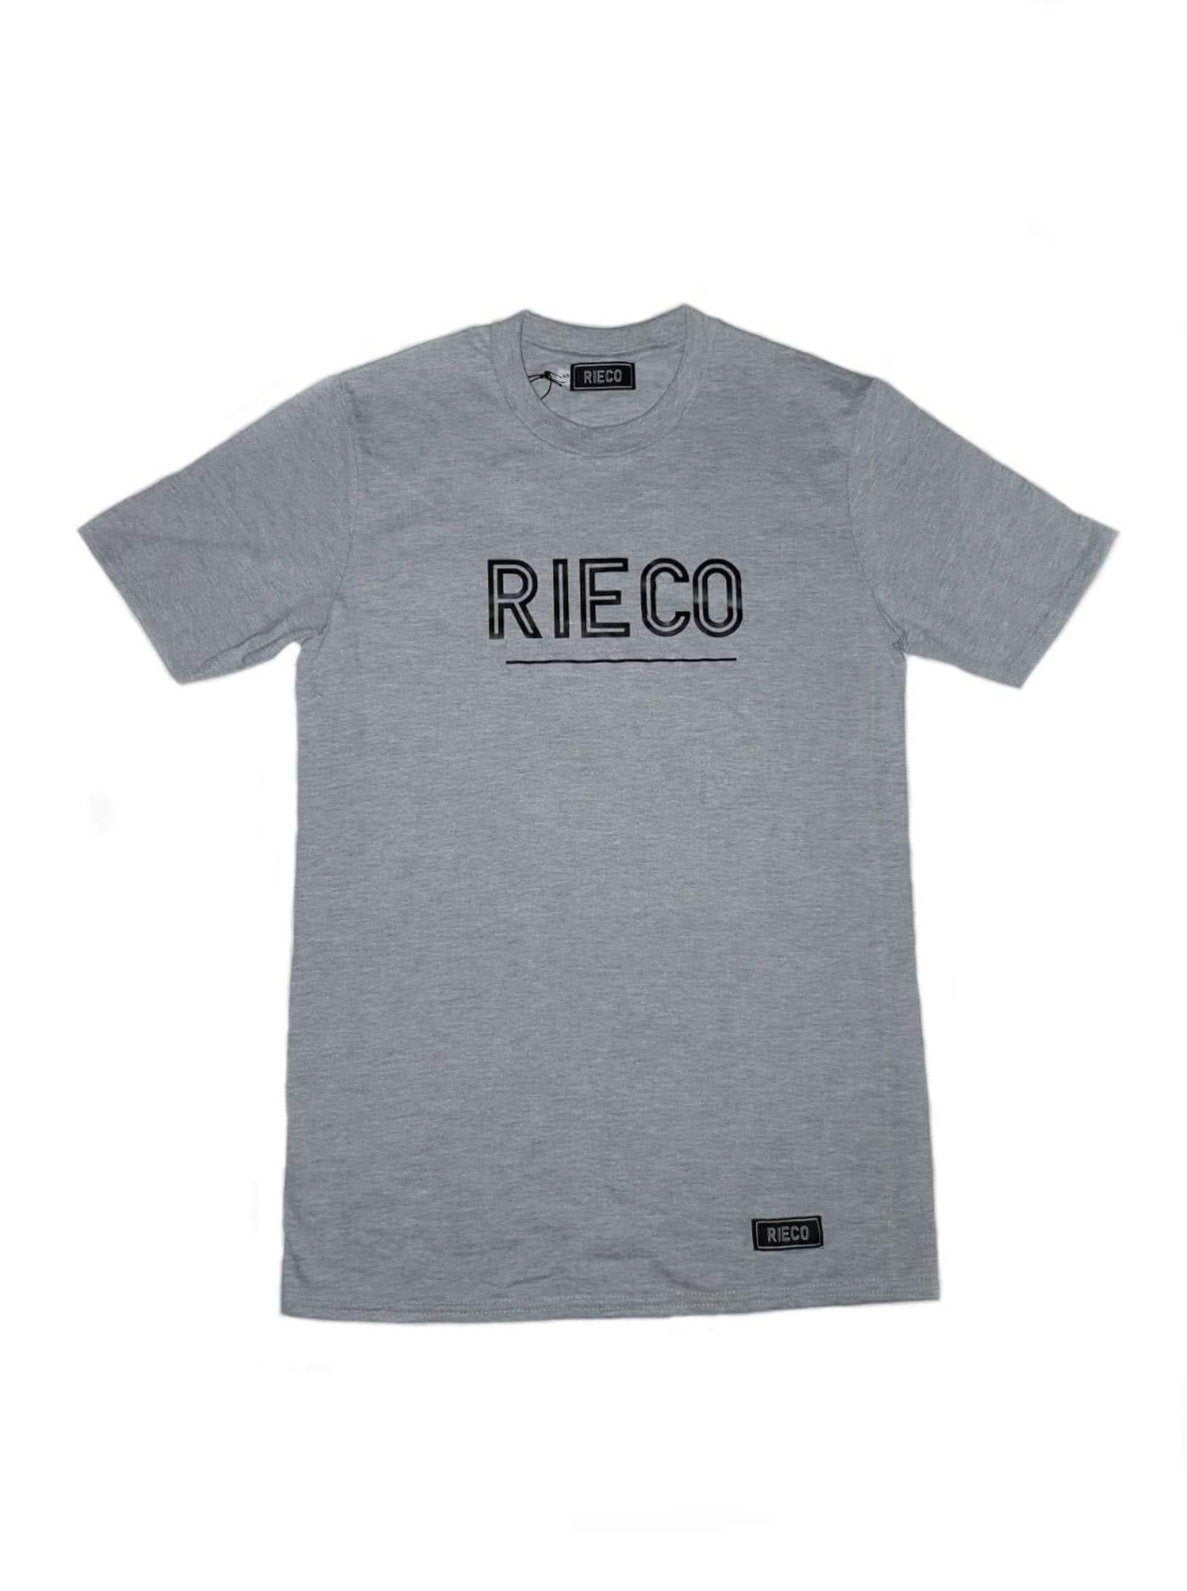 Rieco NS T-Shirt Grey/White - Rieco Clothing